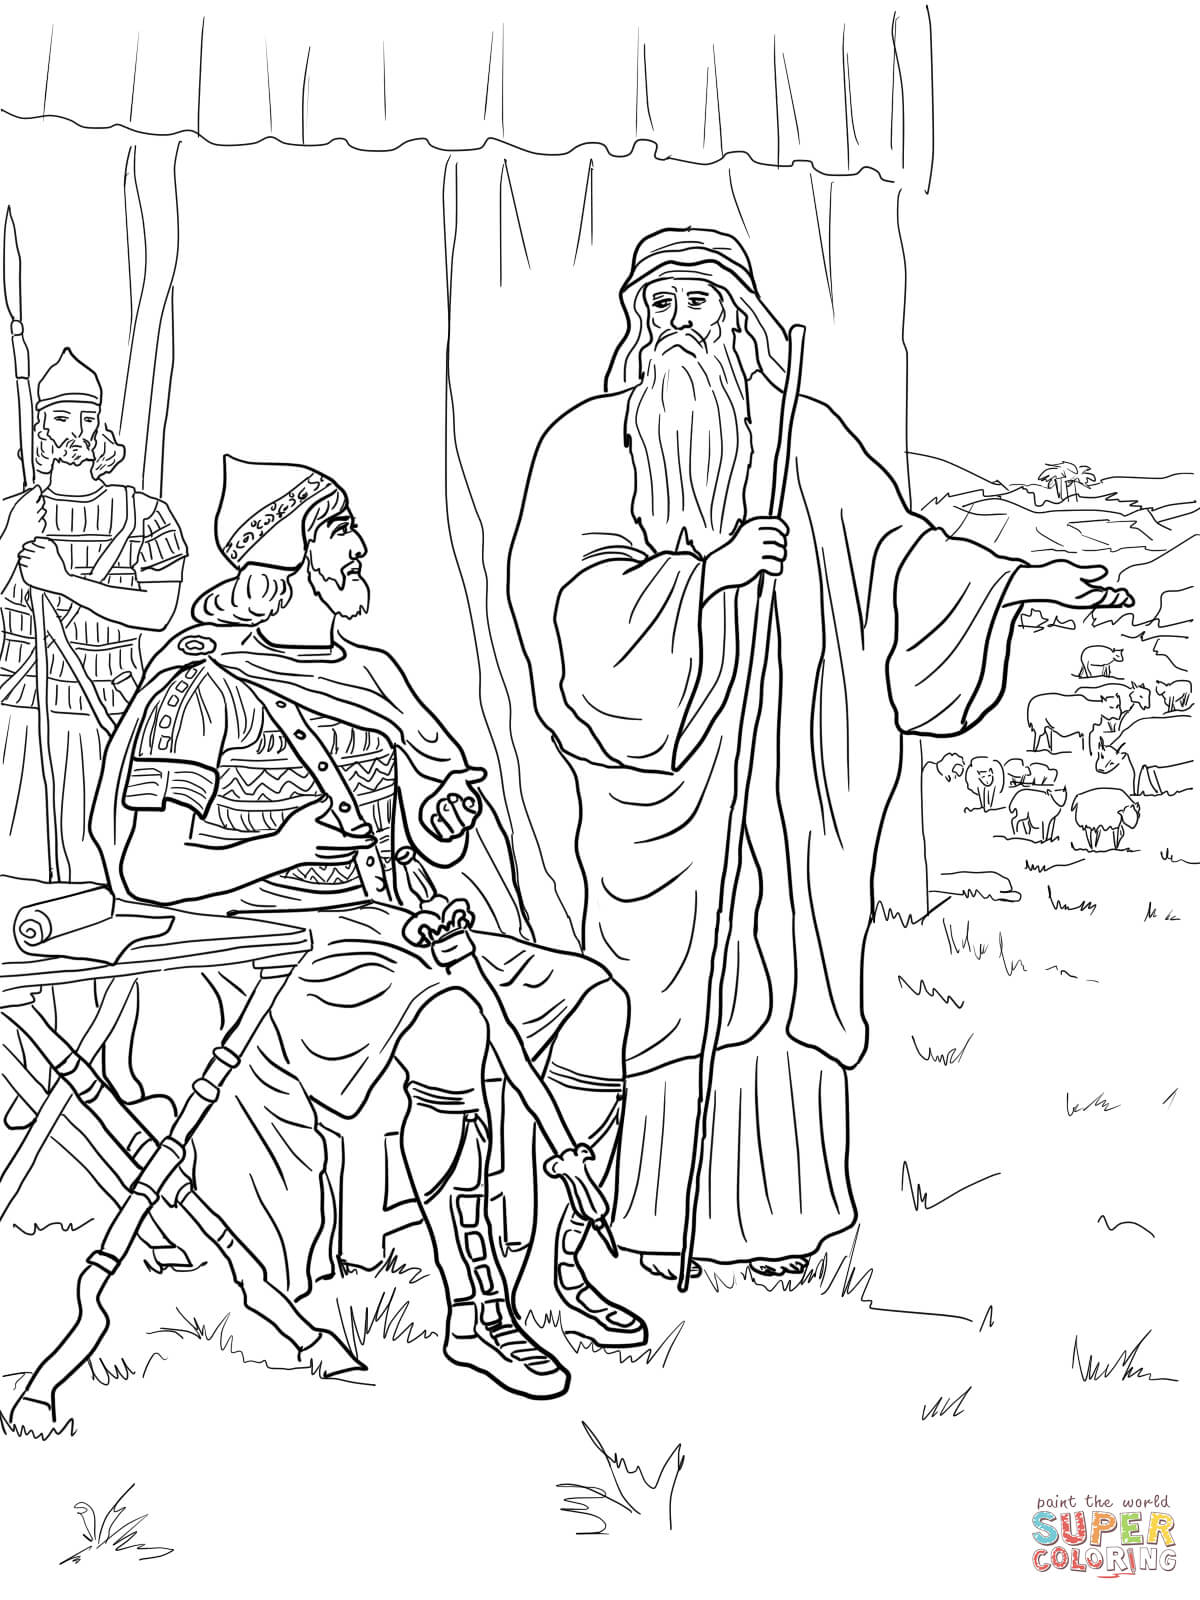 king coloring page - king saul coloring page coloring home